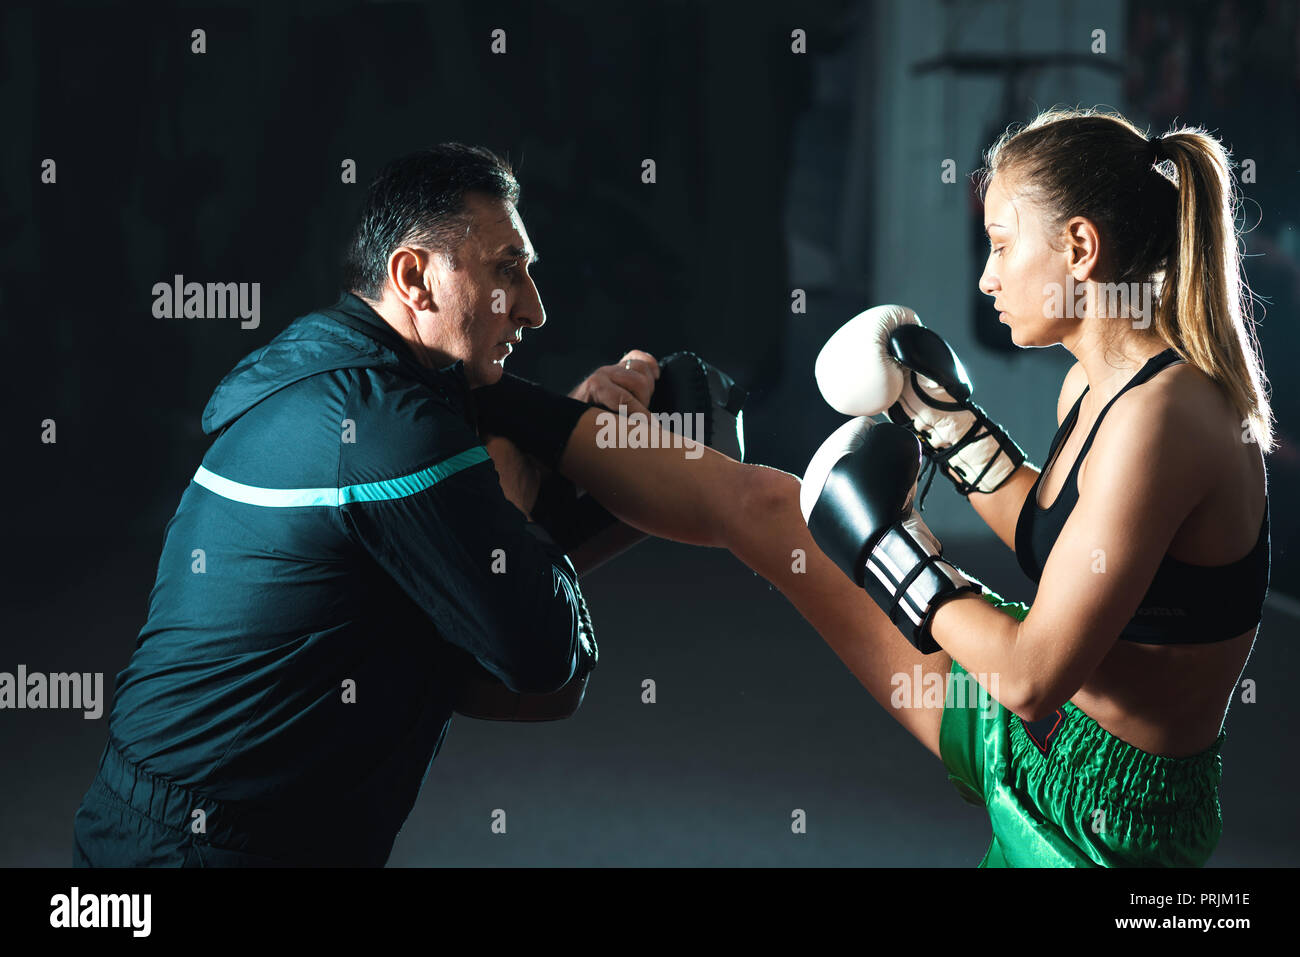 Young adult woman doing high kick during kickboxing training exercise -  Stock Image 6c7f7e89e3